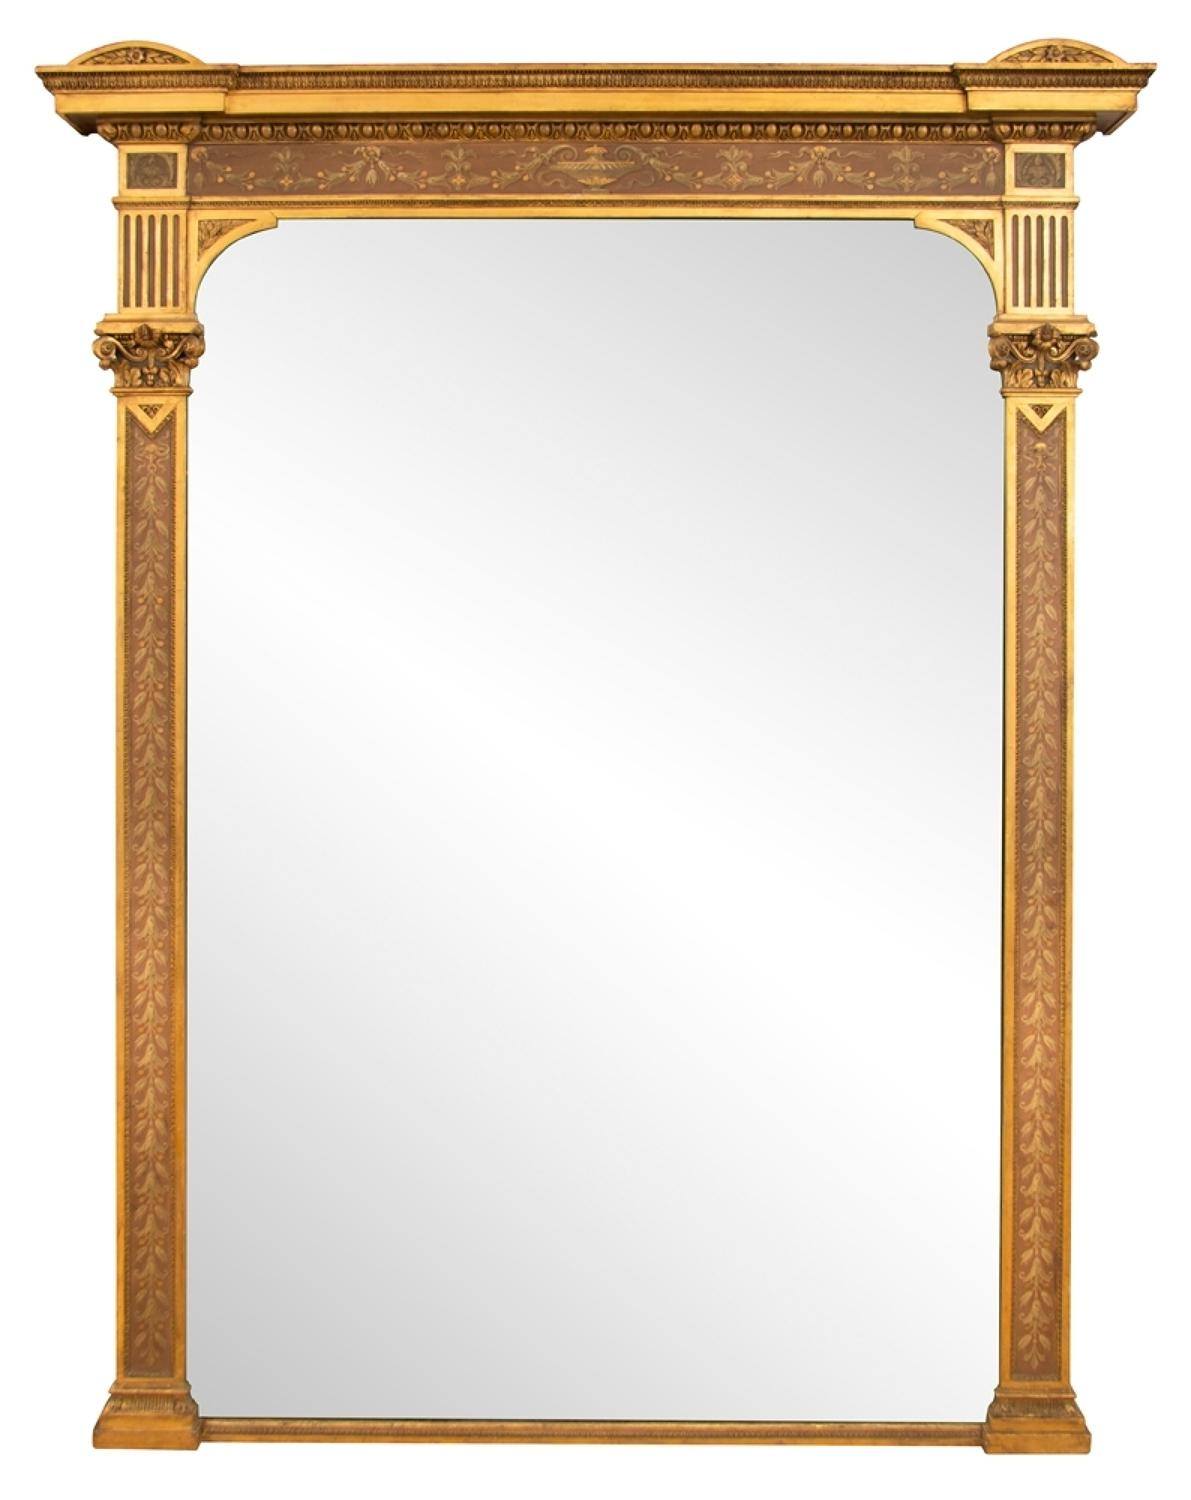 A superb 1800's Large Antique Gilded and painted overmantle mirror